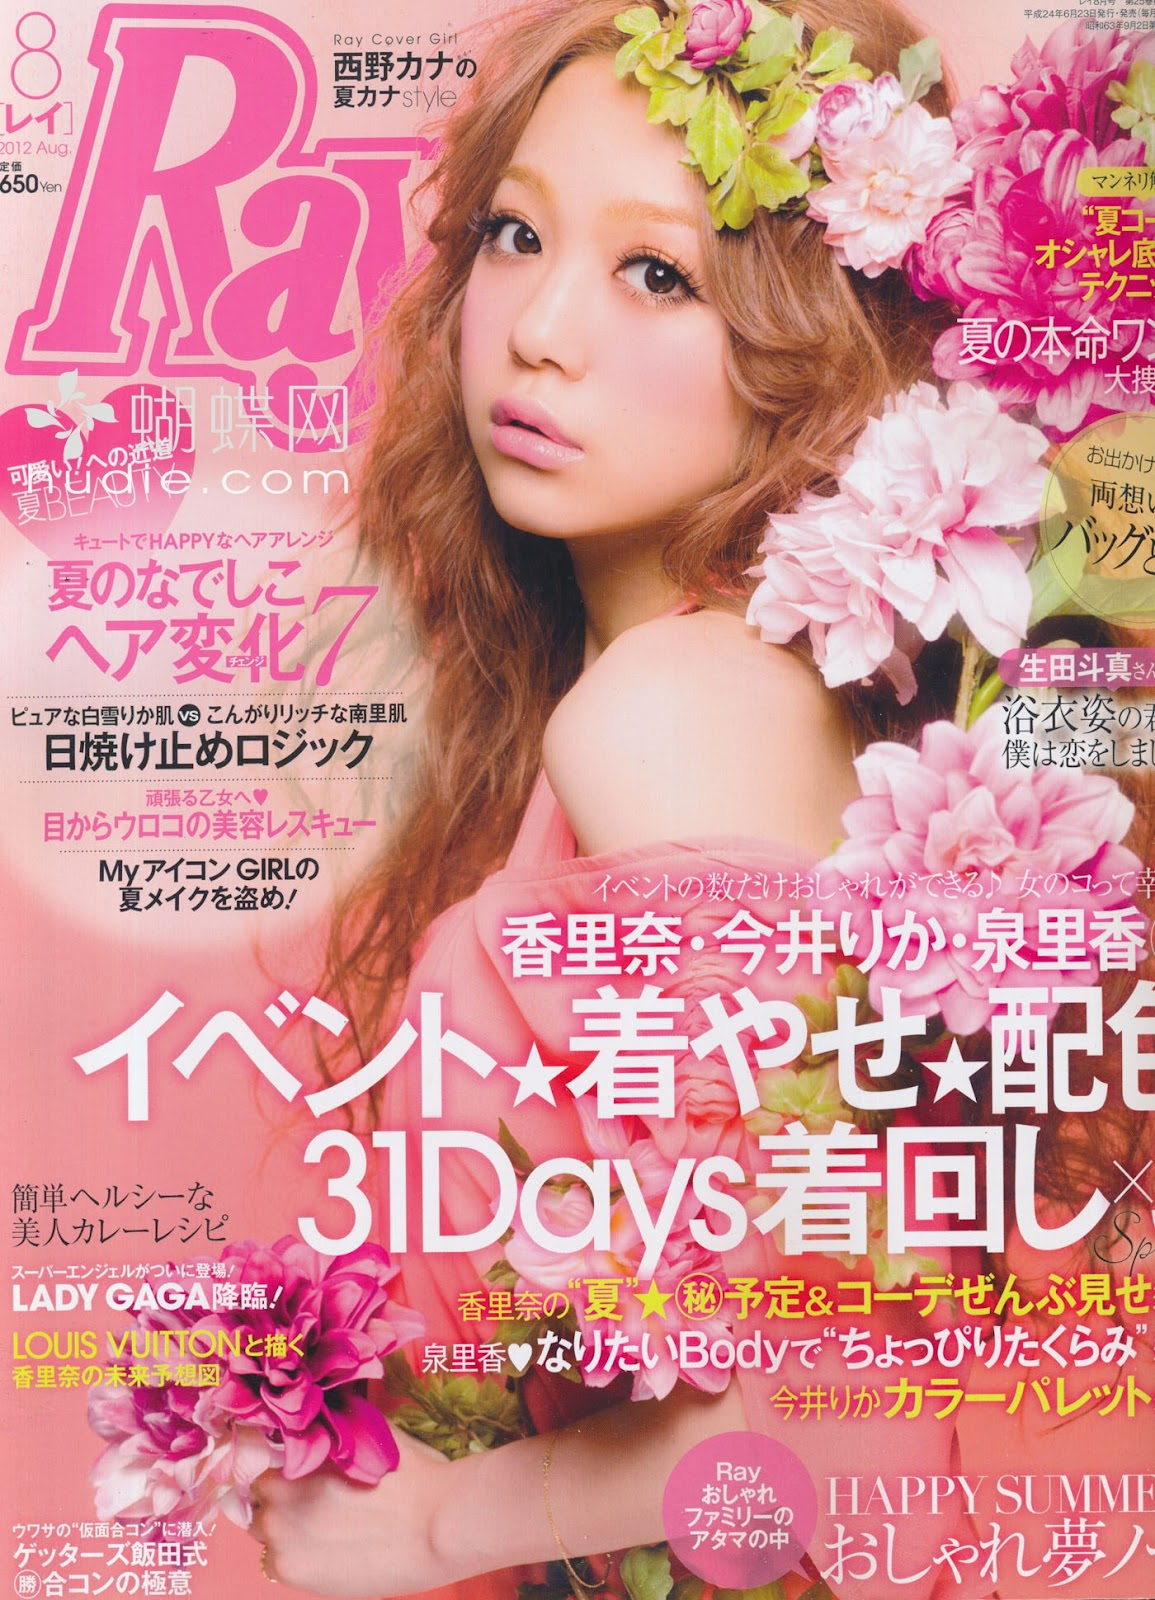 ray magazine scans august 2012 kana nishino